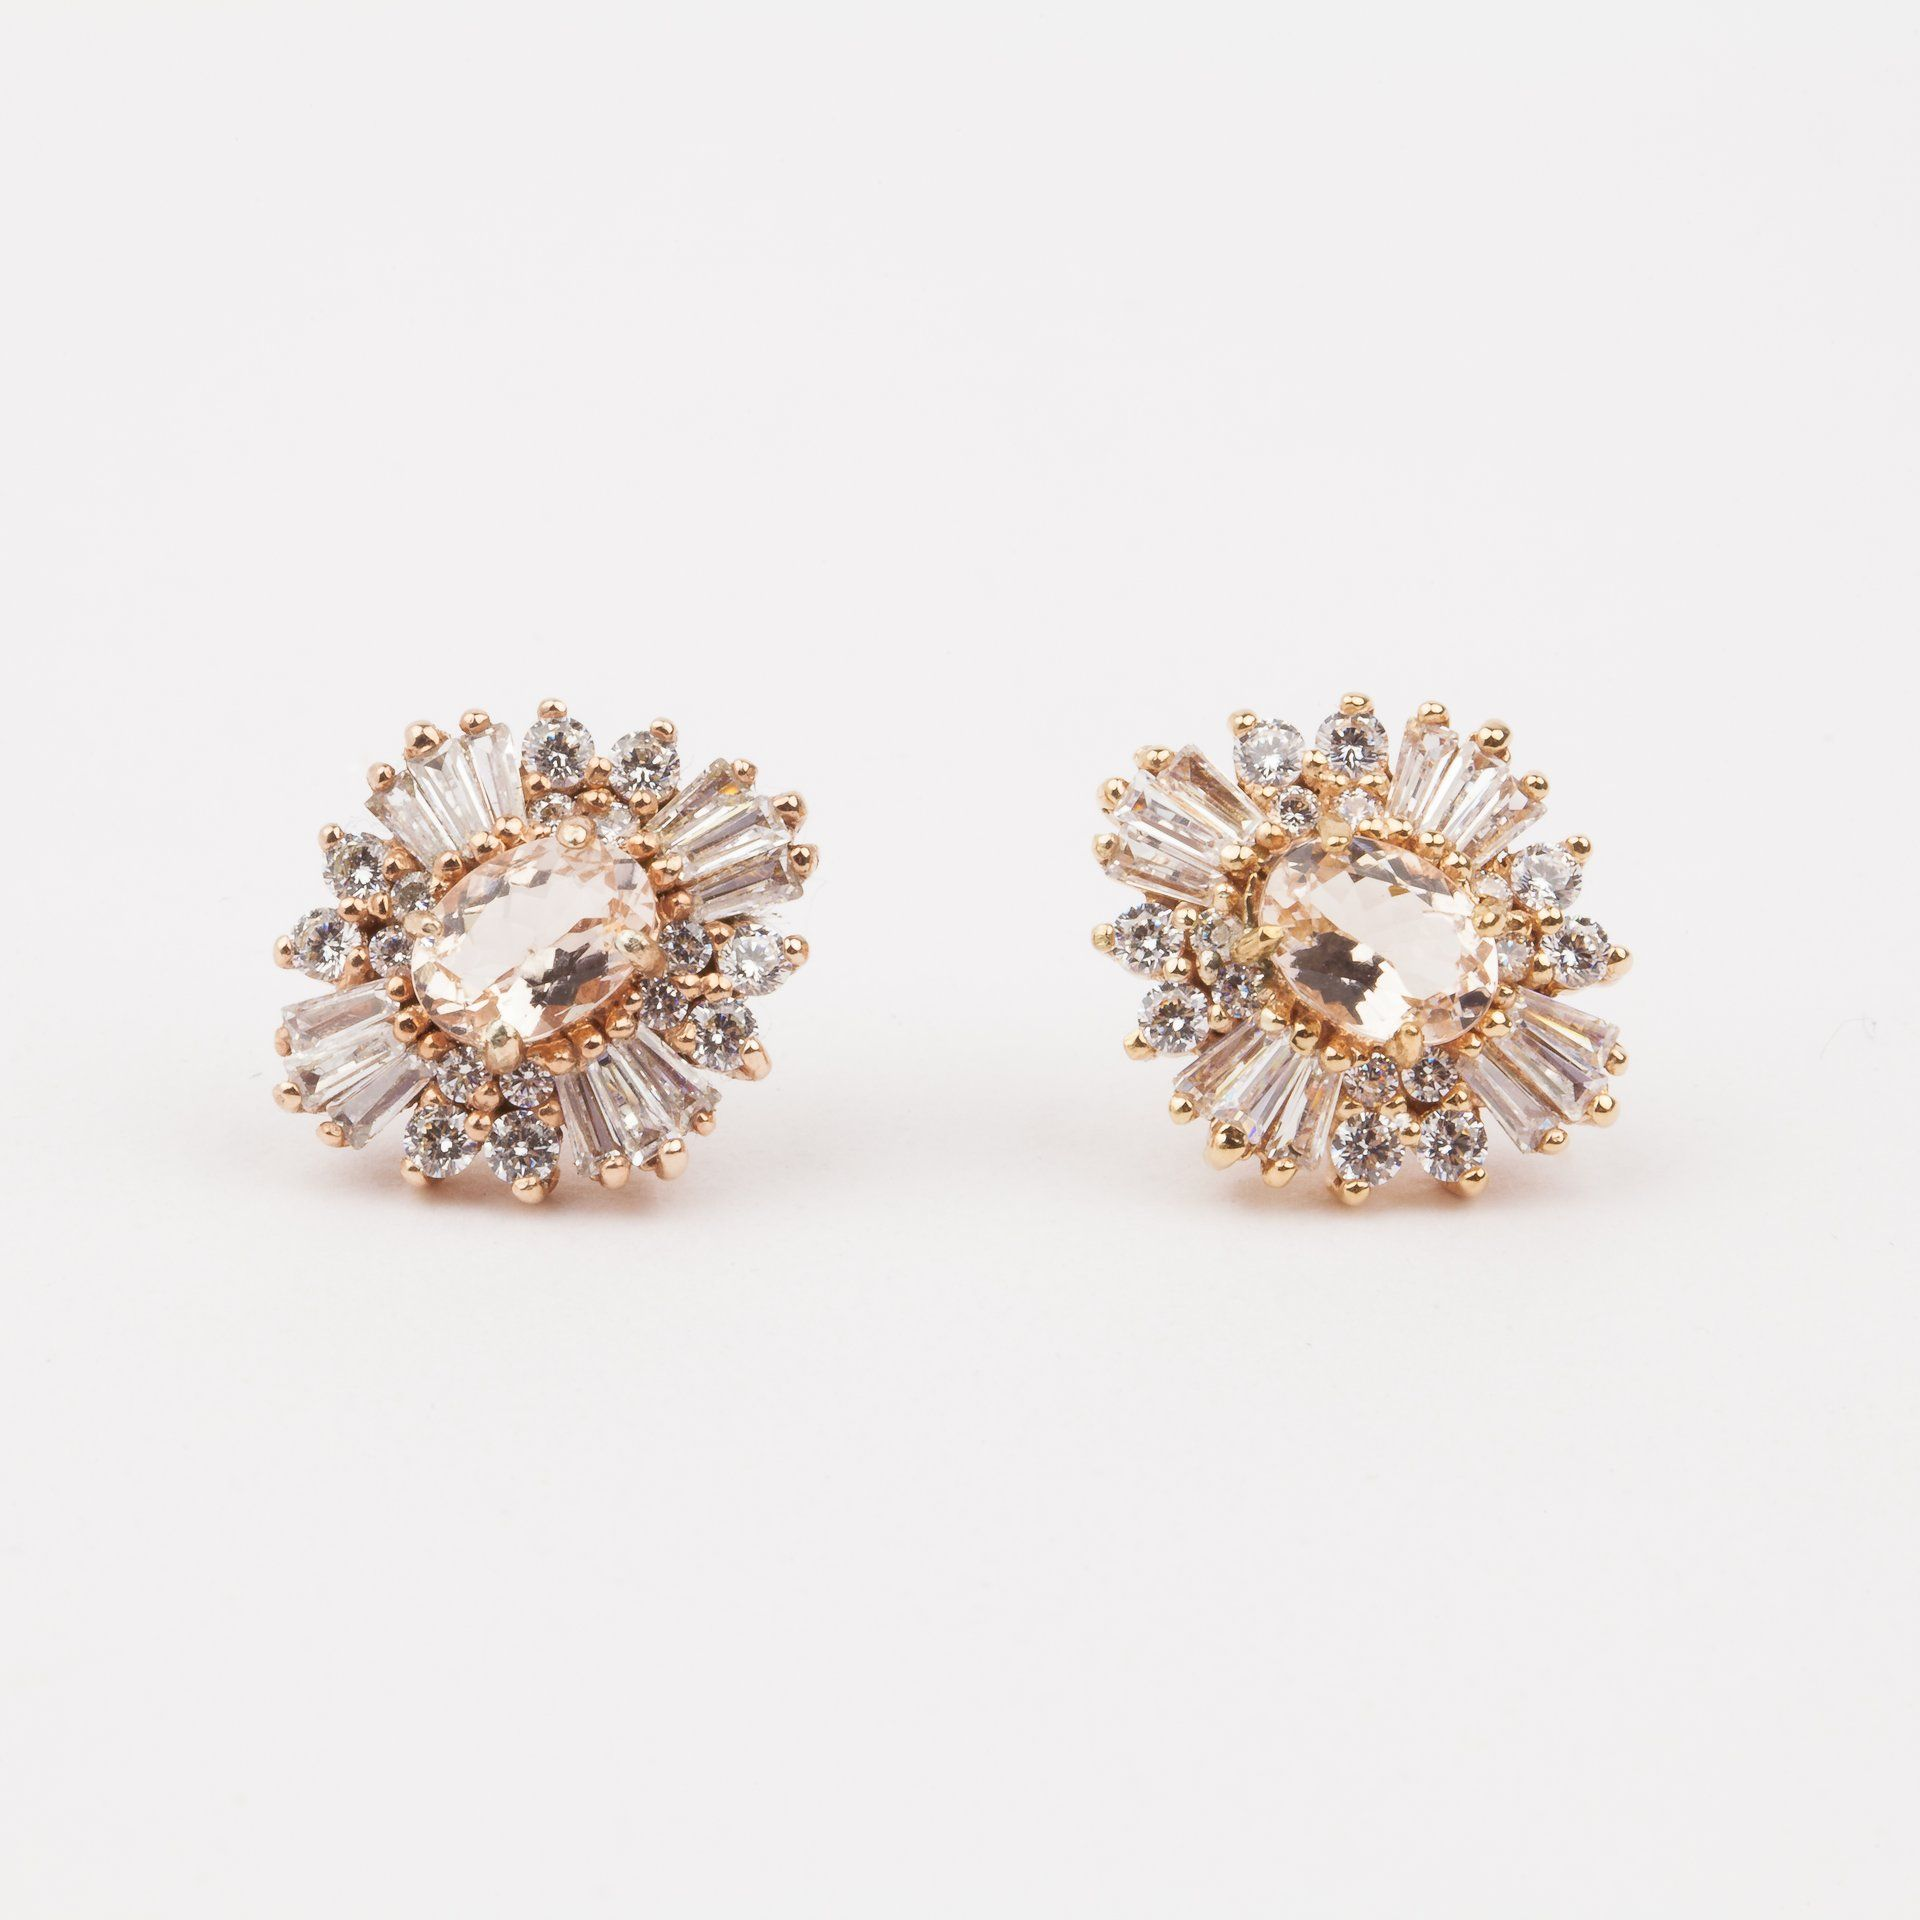 Victoria romantic cluster earrings cluster earrings peach and